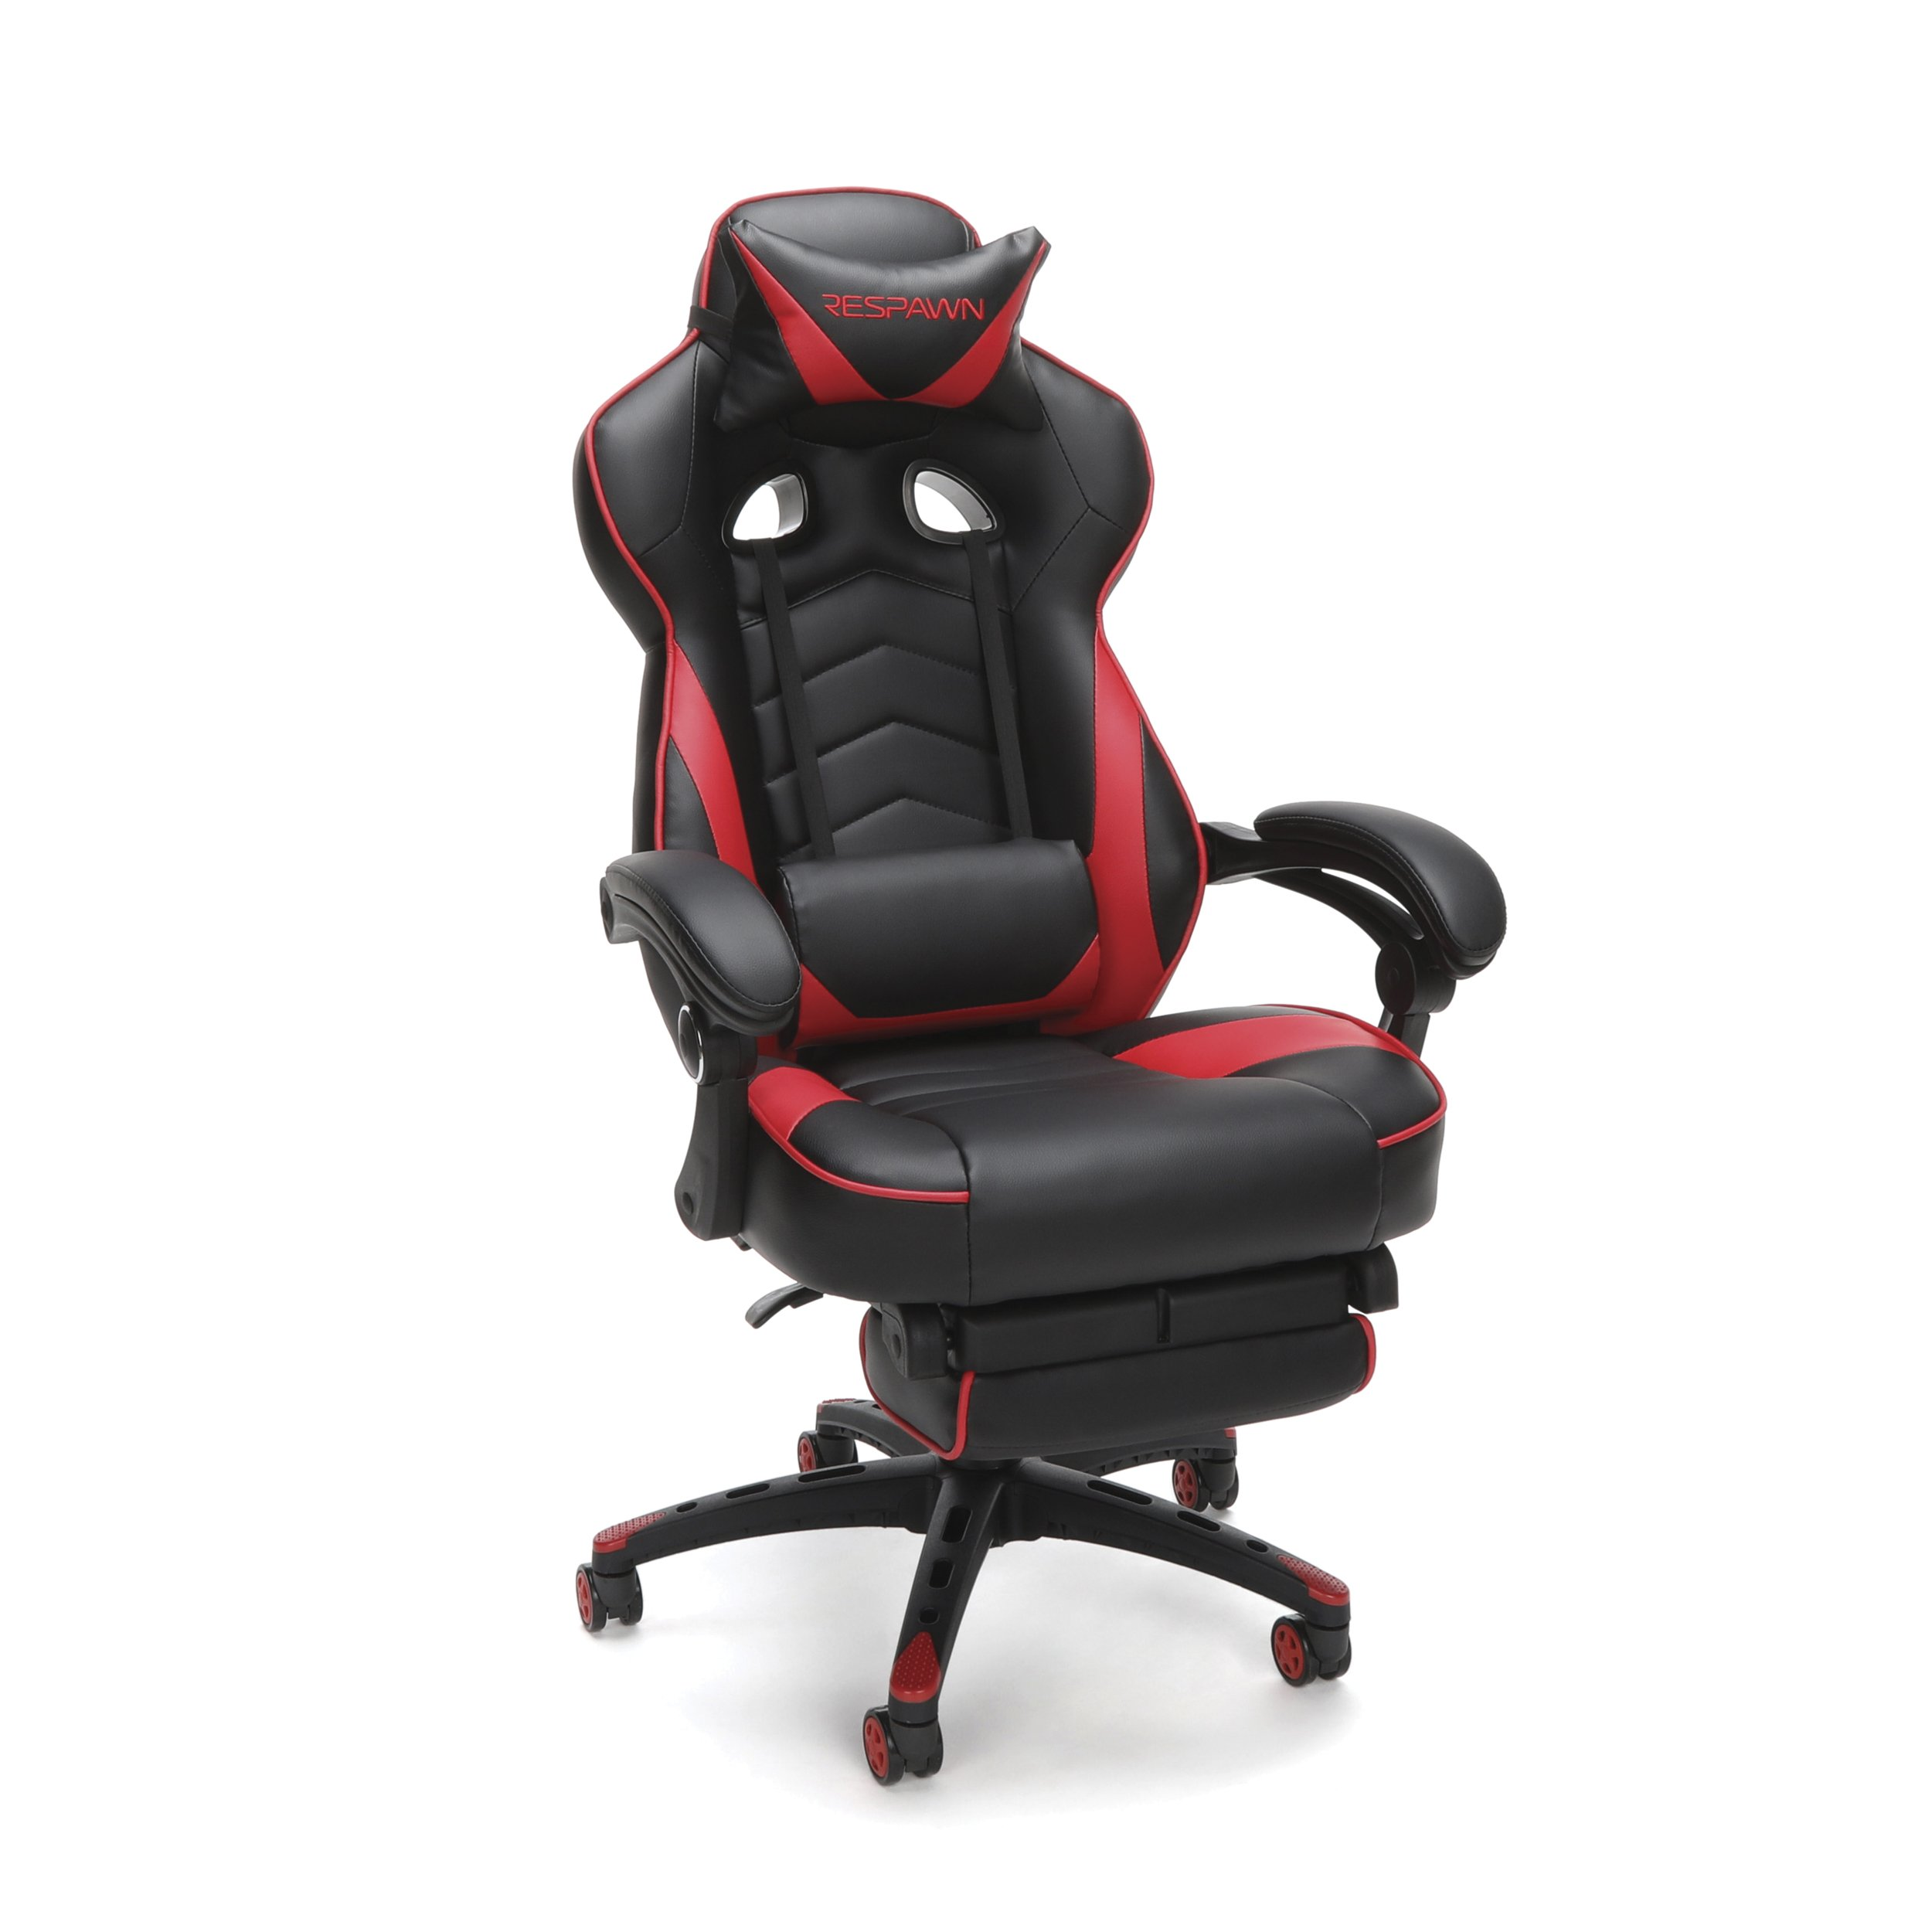 RESPAWN-110 Racing Style Gaming Chair - Reclining Ergonomic Leather Chair with Footrest, Office or Gaming Chair (RSP-110-RED) by RESPAWN